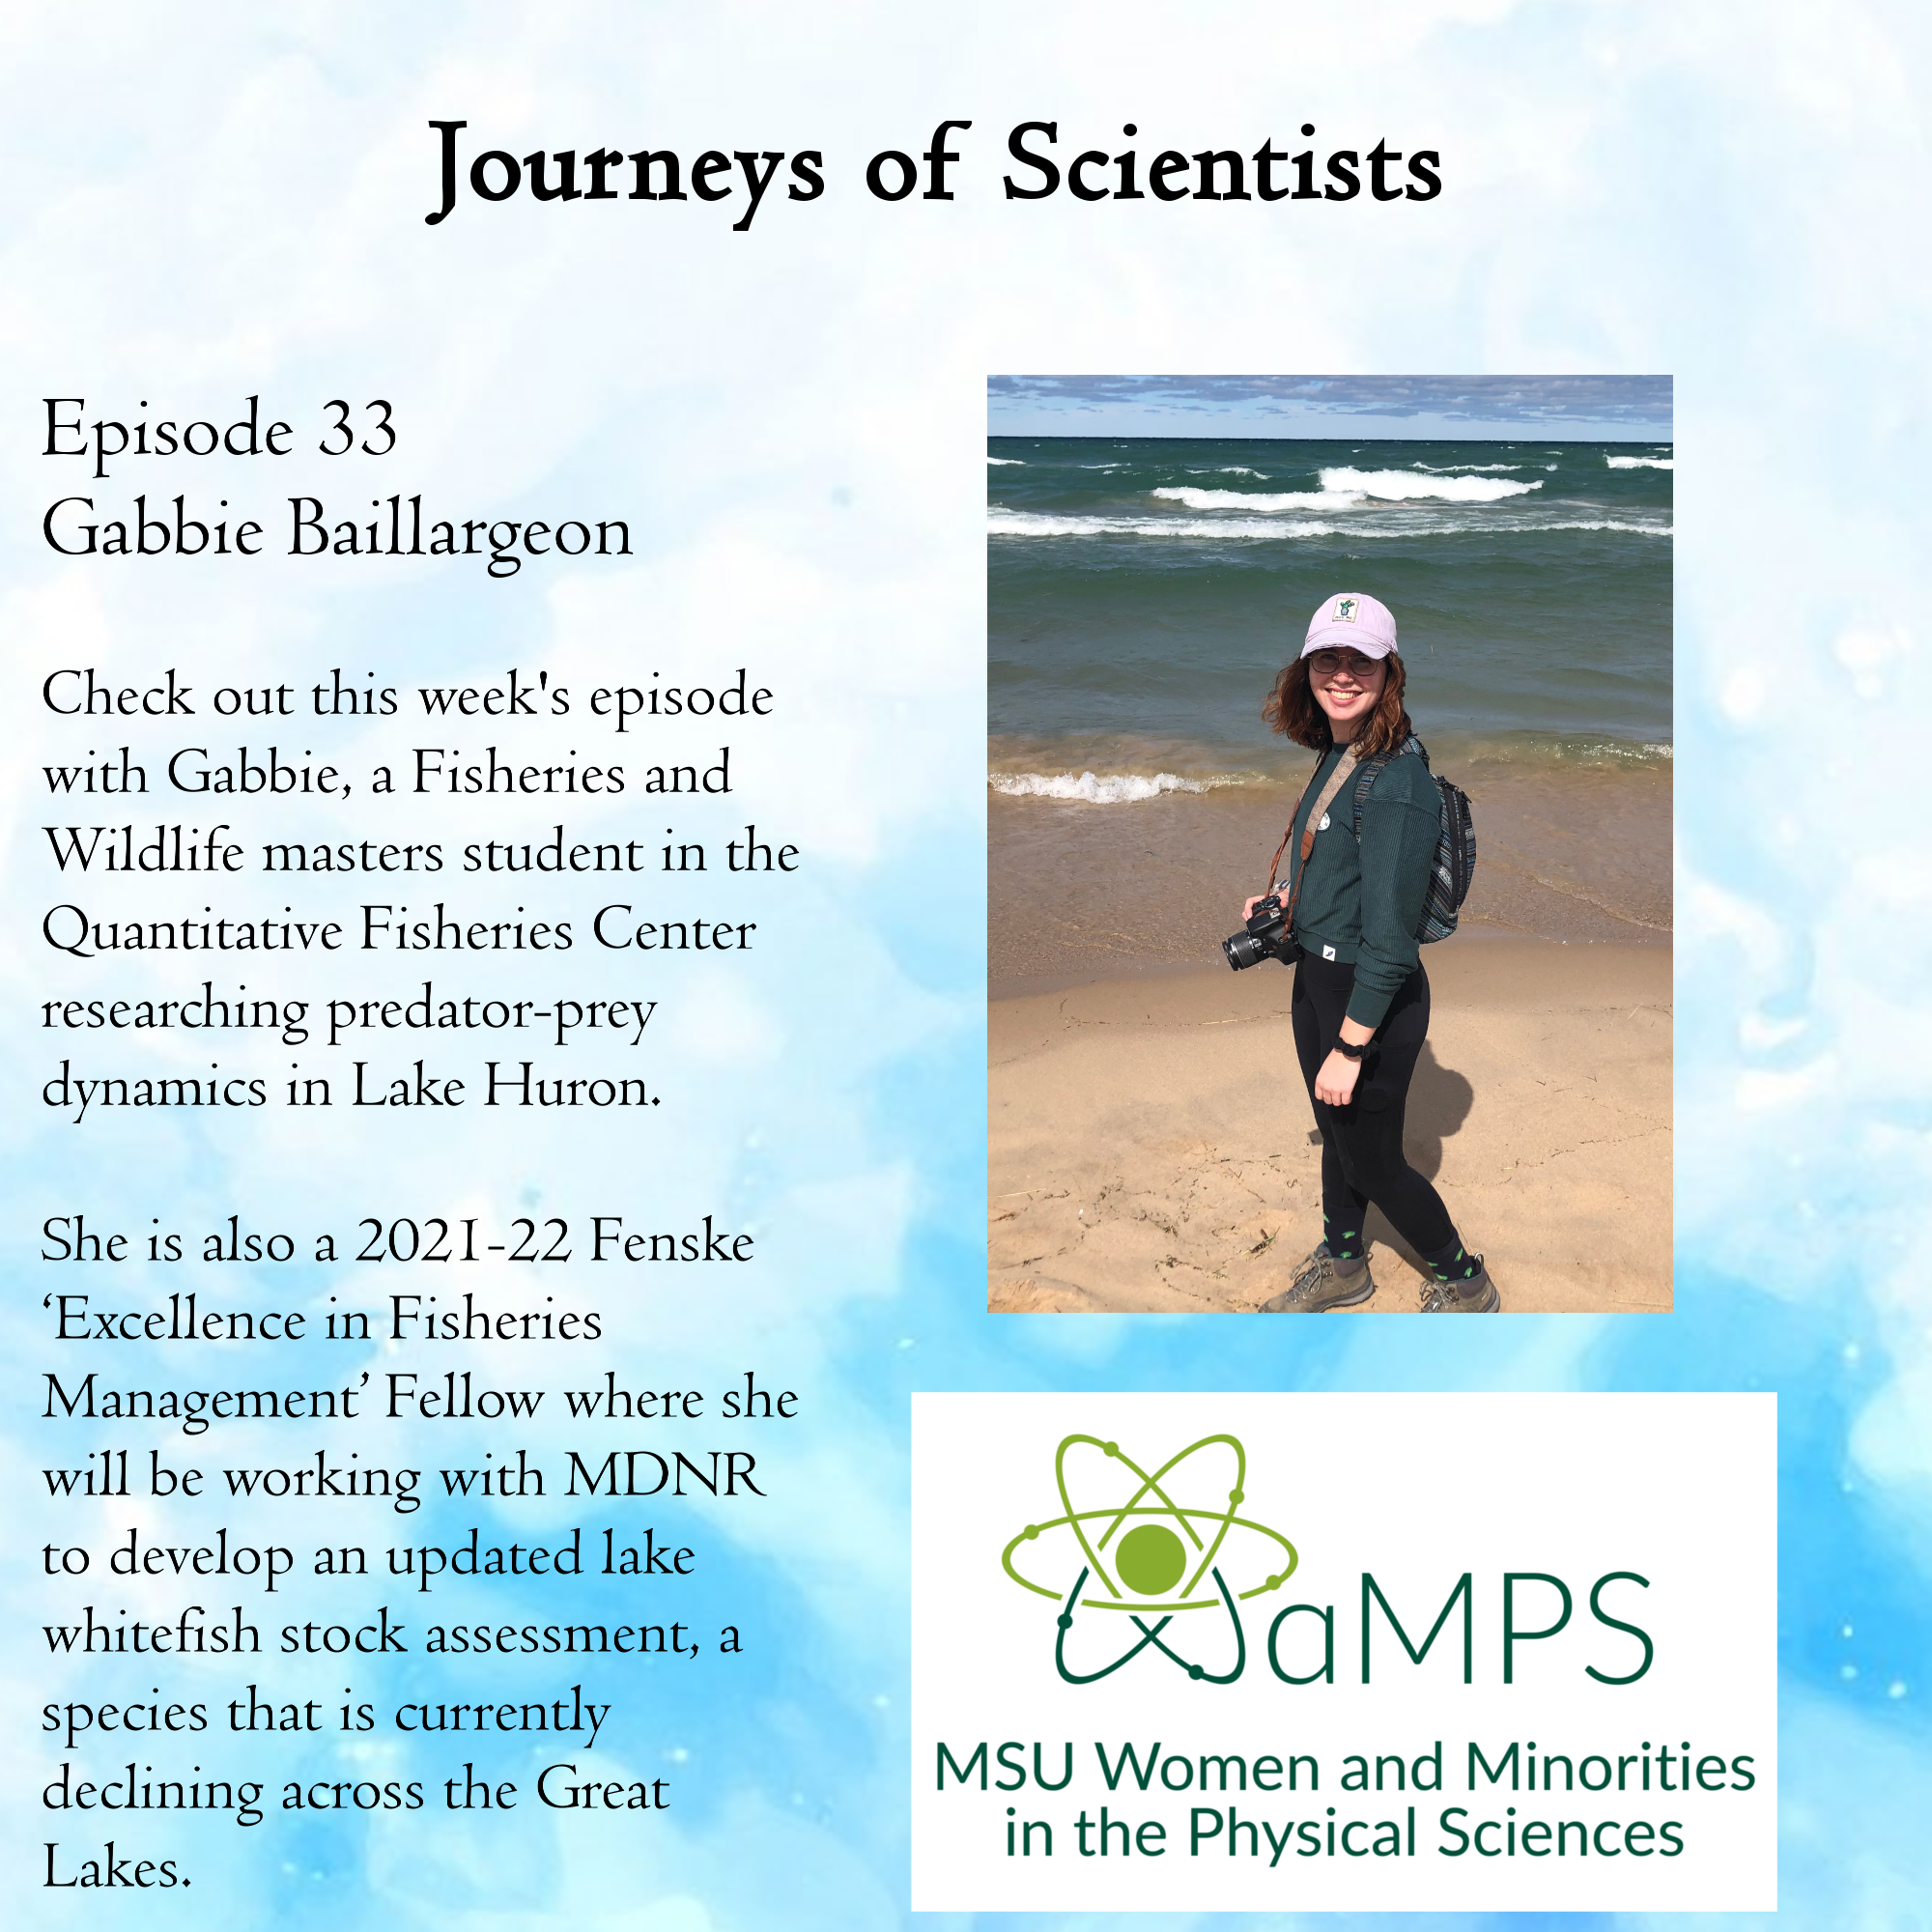 Gabbie is a Fisheries and Wildlife masters student in the Quantitative  Fisheries Center researching predator-prey dynamics in Lake Huron. She is also a 2021-22 Fenske 'Excellence in Fisheries Management' Fellow where she will be working with MDNR to develop an updated lake whitefish stock assessment, a species that is currently declining across the Great Lakes.